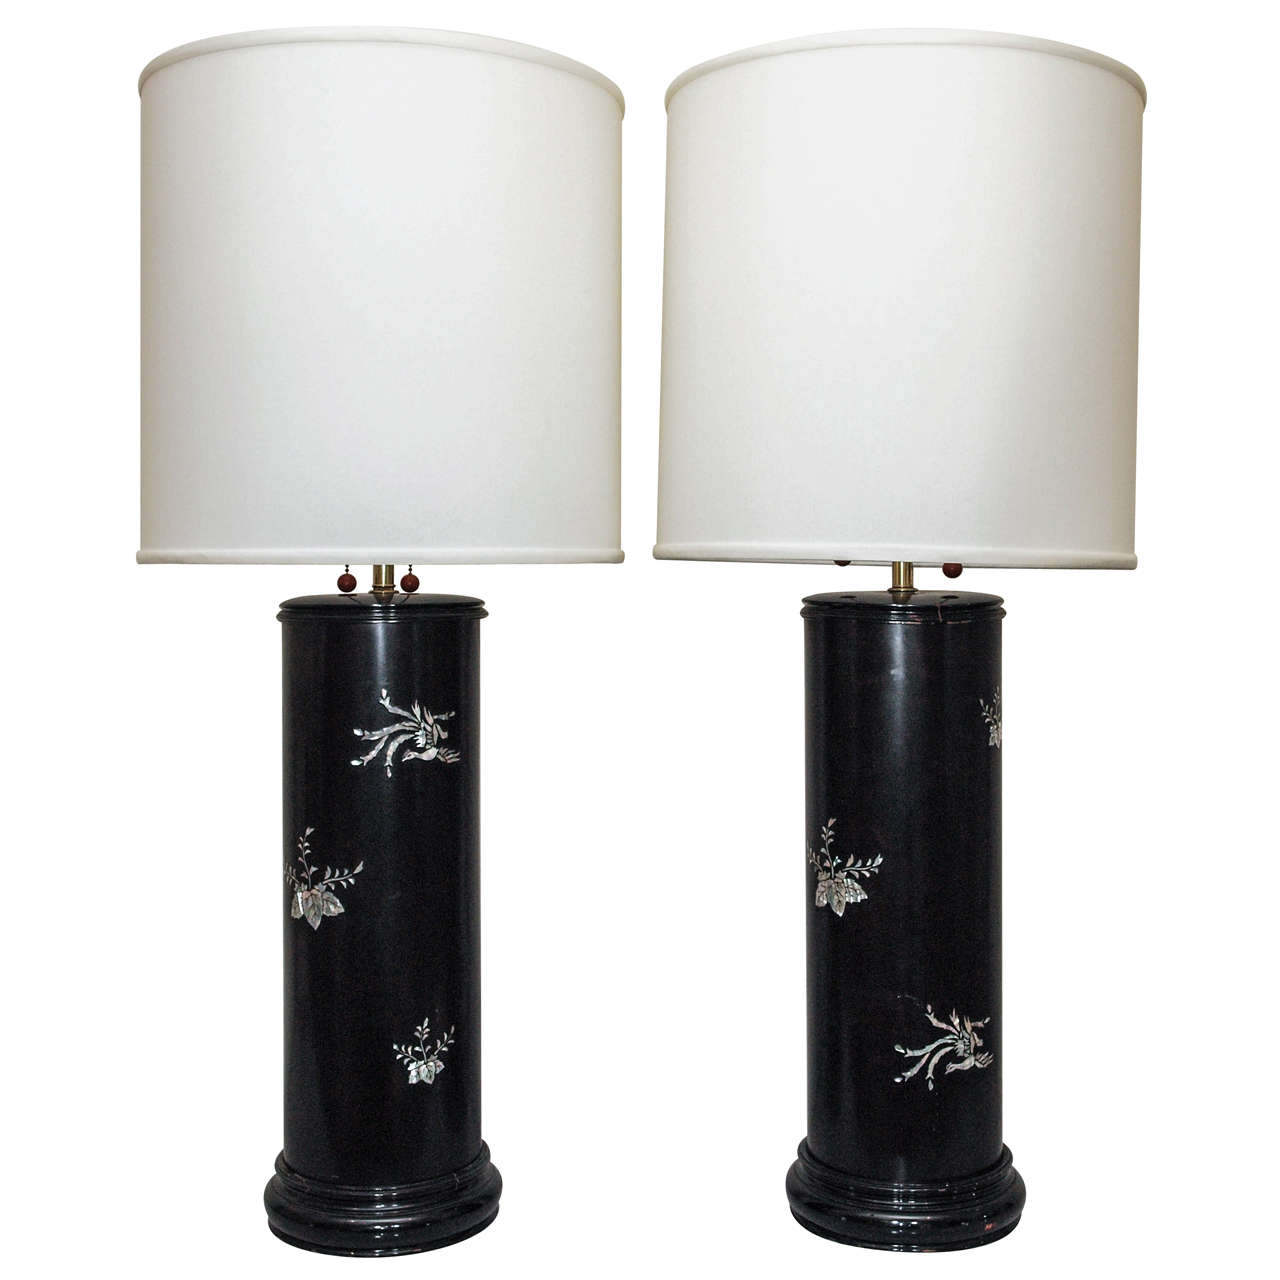 imposing ebonized table lamps with mother of pearl inlay at 1stdibs. Black Bedroom Furniture Sets. Home Design Ideas